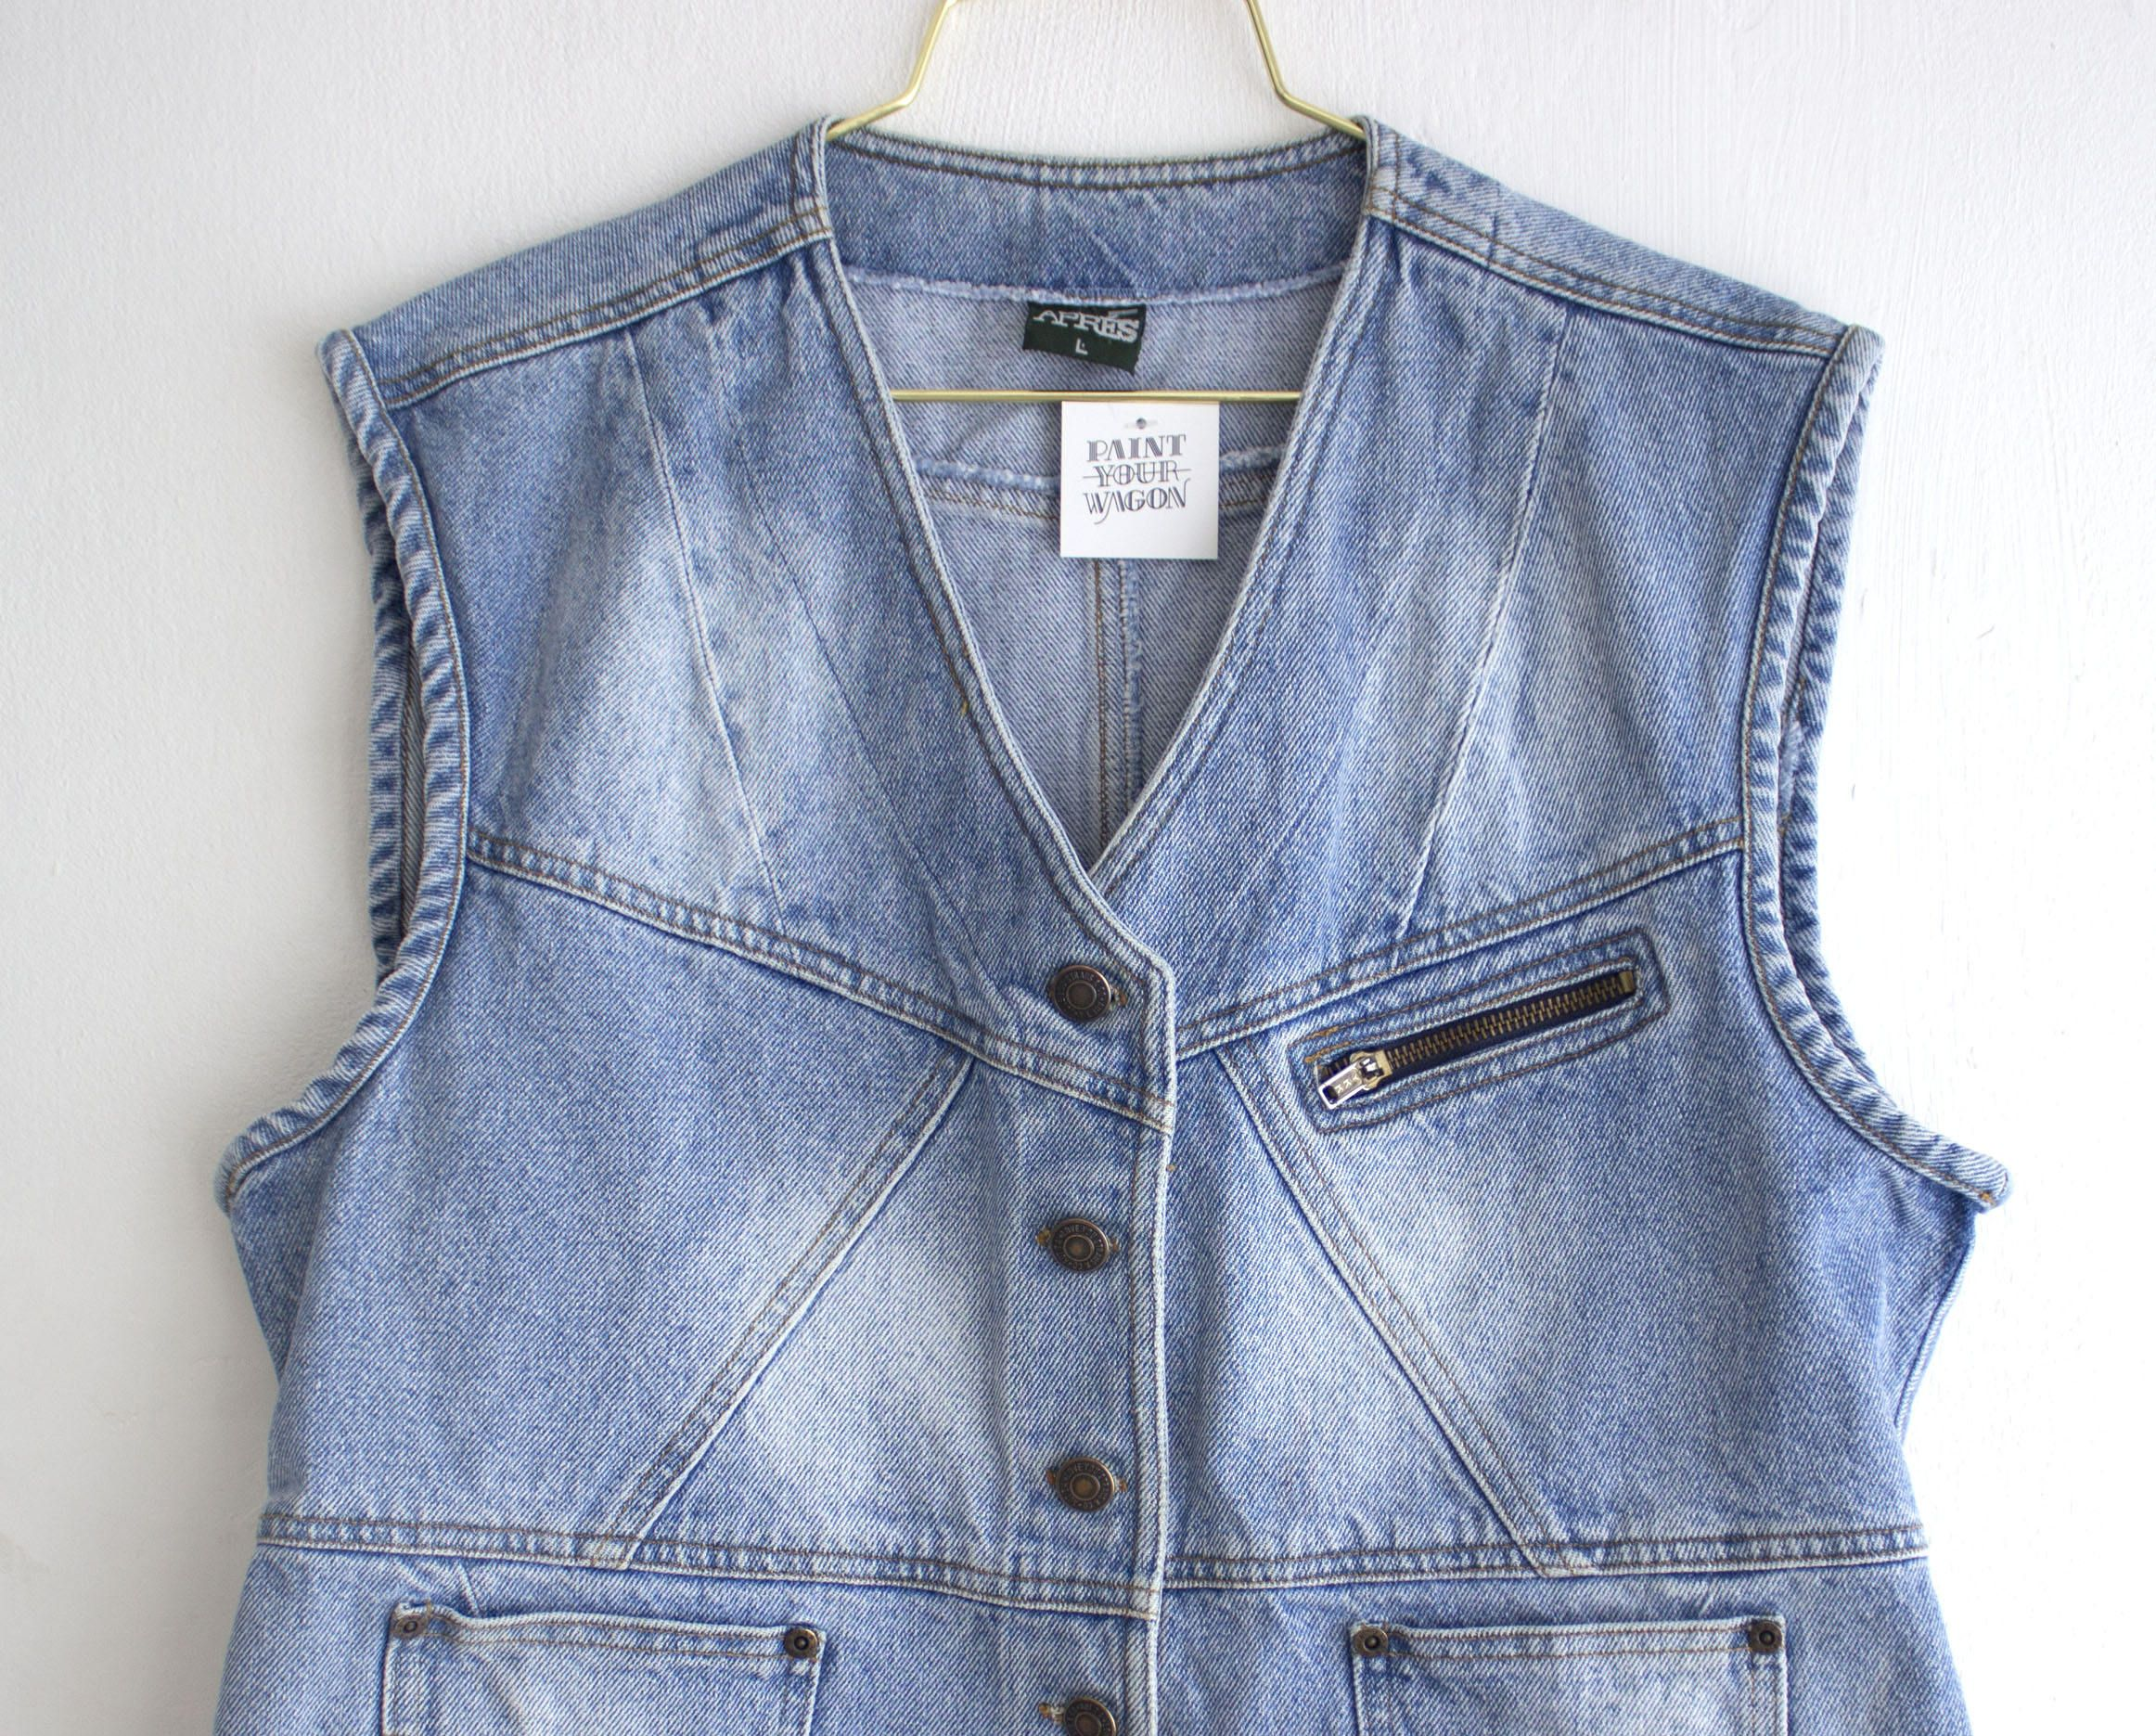 1990s Denim Vest In A Classic Silhouette This Cool 90s Jean Sleeveless Jacket Will Fit Both Men And Women The Met Sleeveless Jacket Denim Fashion Denim Vest [ 1871 x 2324 Pixel ]